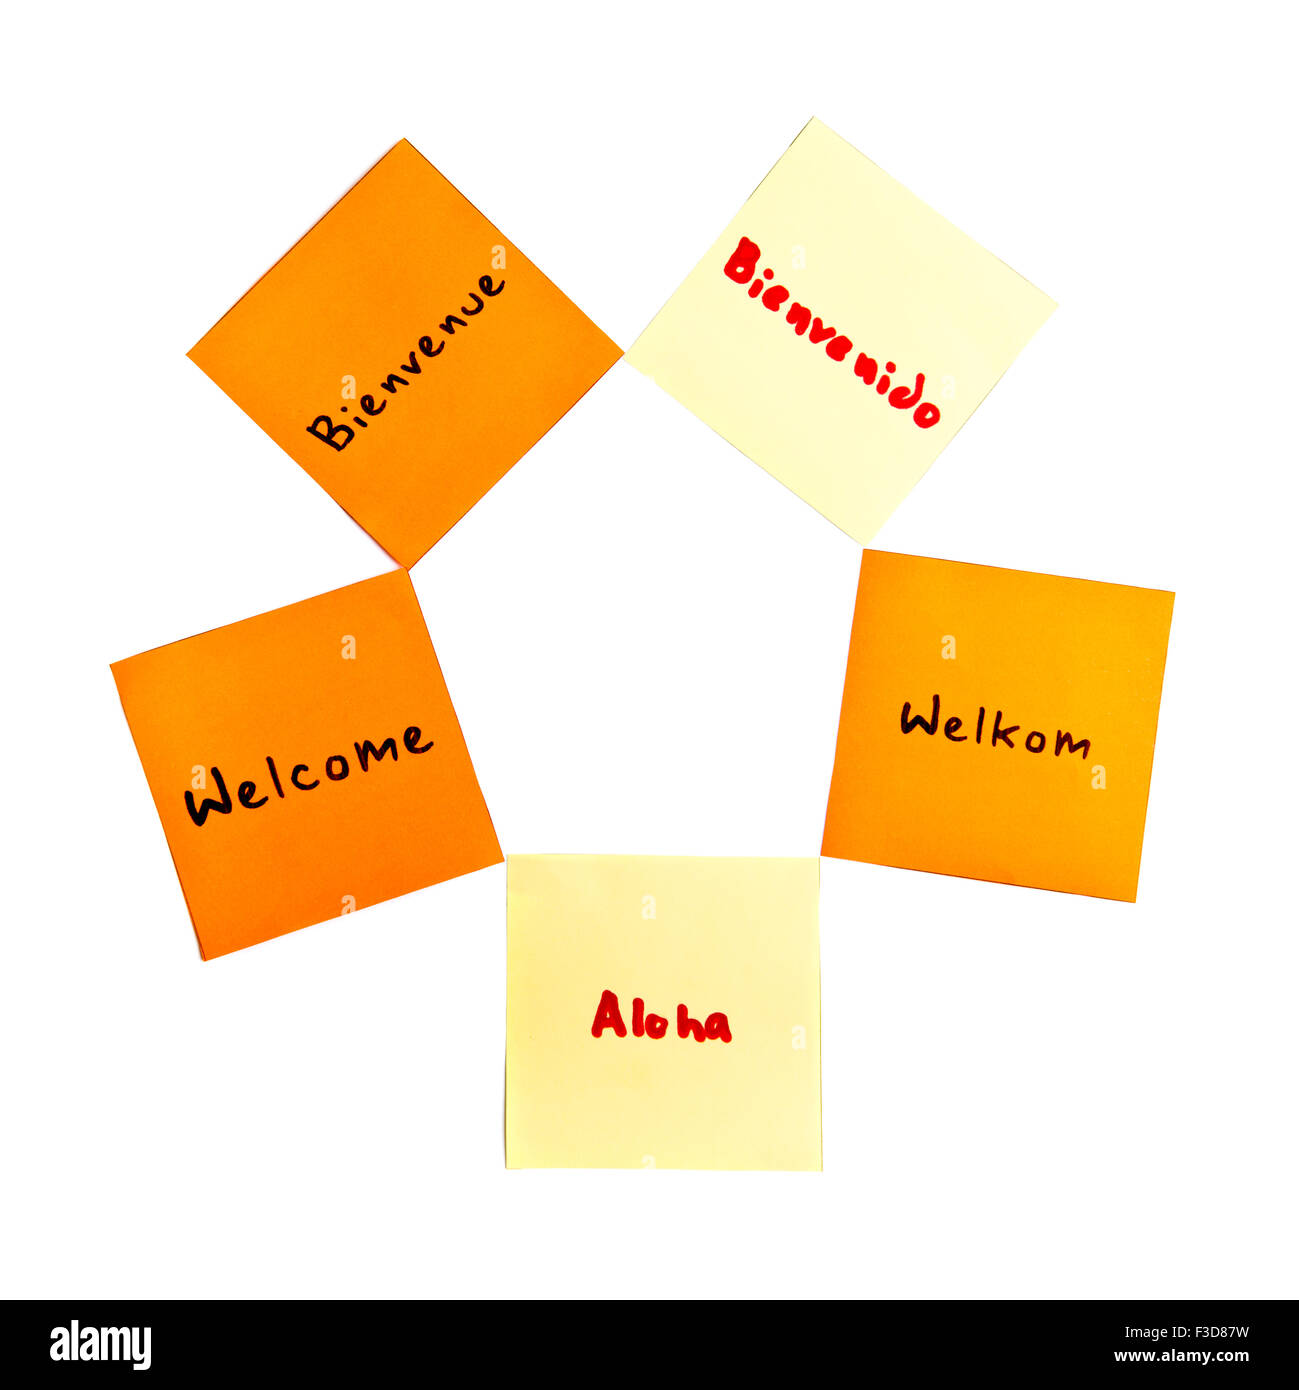 welcome Word Cloud written on paper - Stock Image